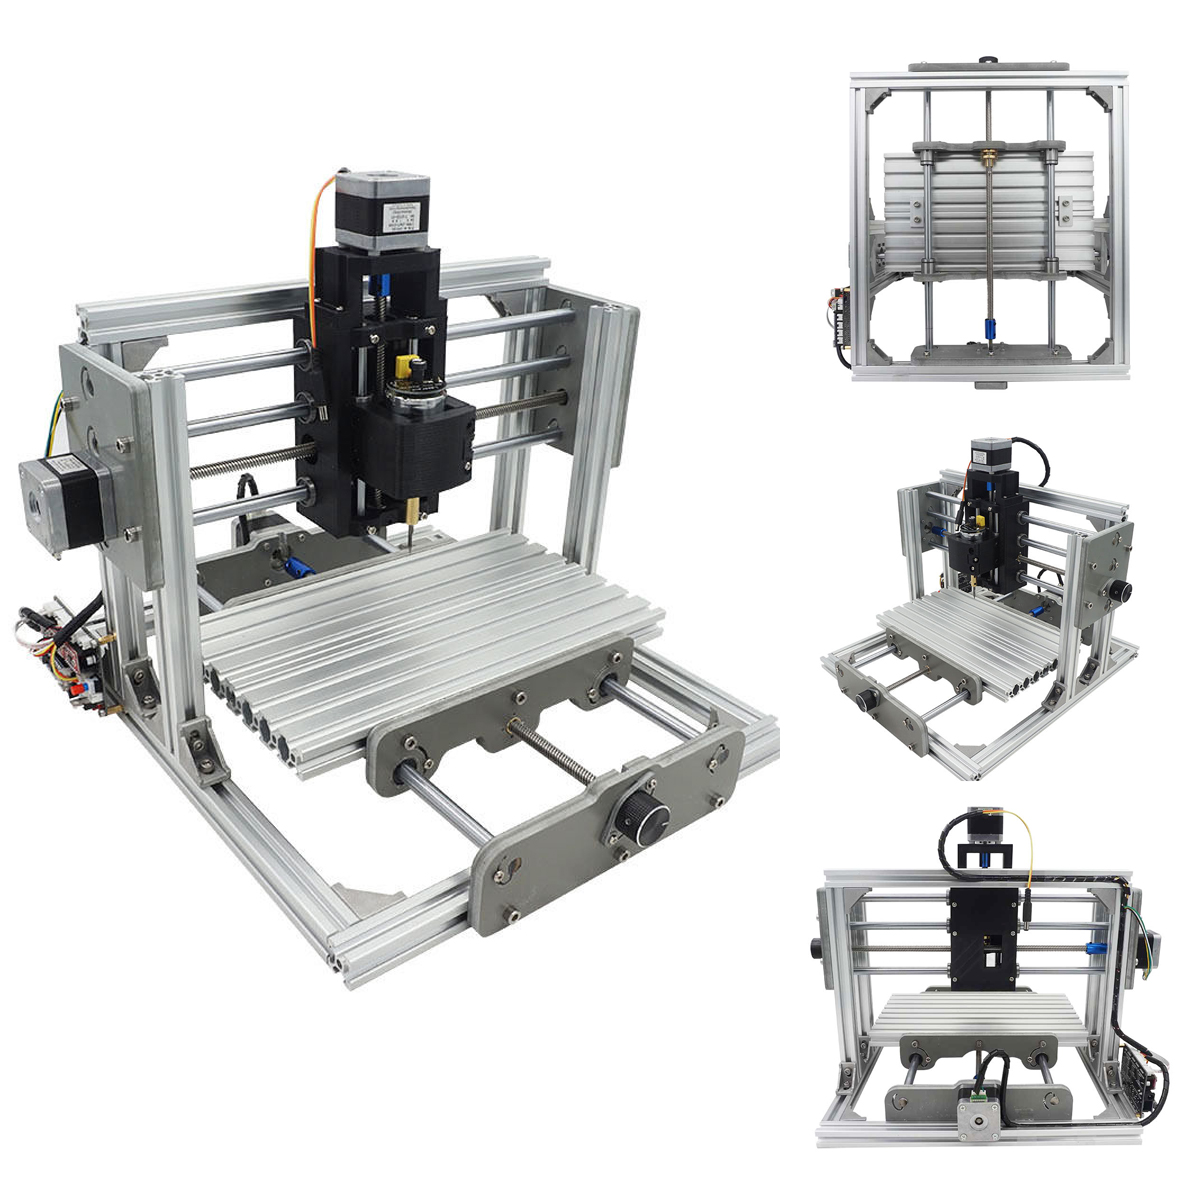 3 Axis Mini PCB PVC CNC Milling Machine Engraving DIY Router Kit With 2500mw Laser Engraver 9.4X6.7X2.6""